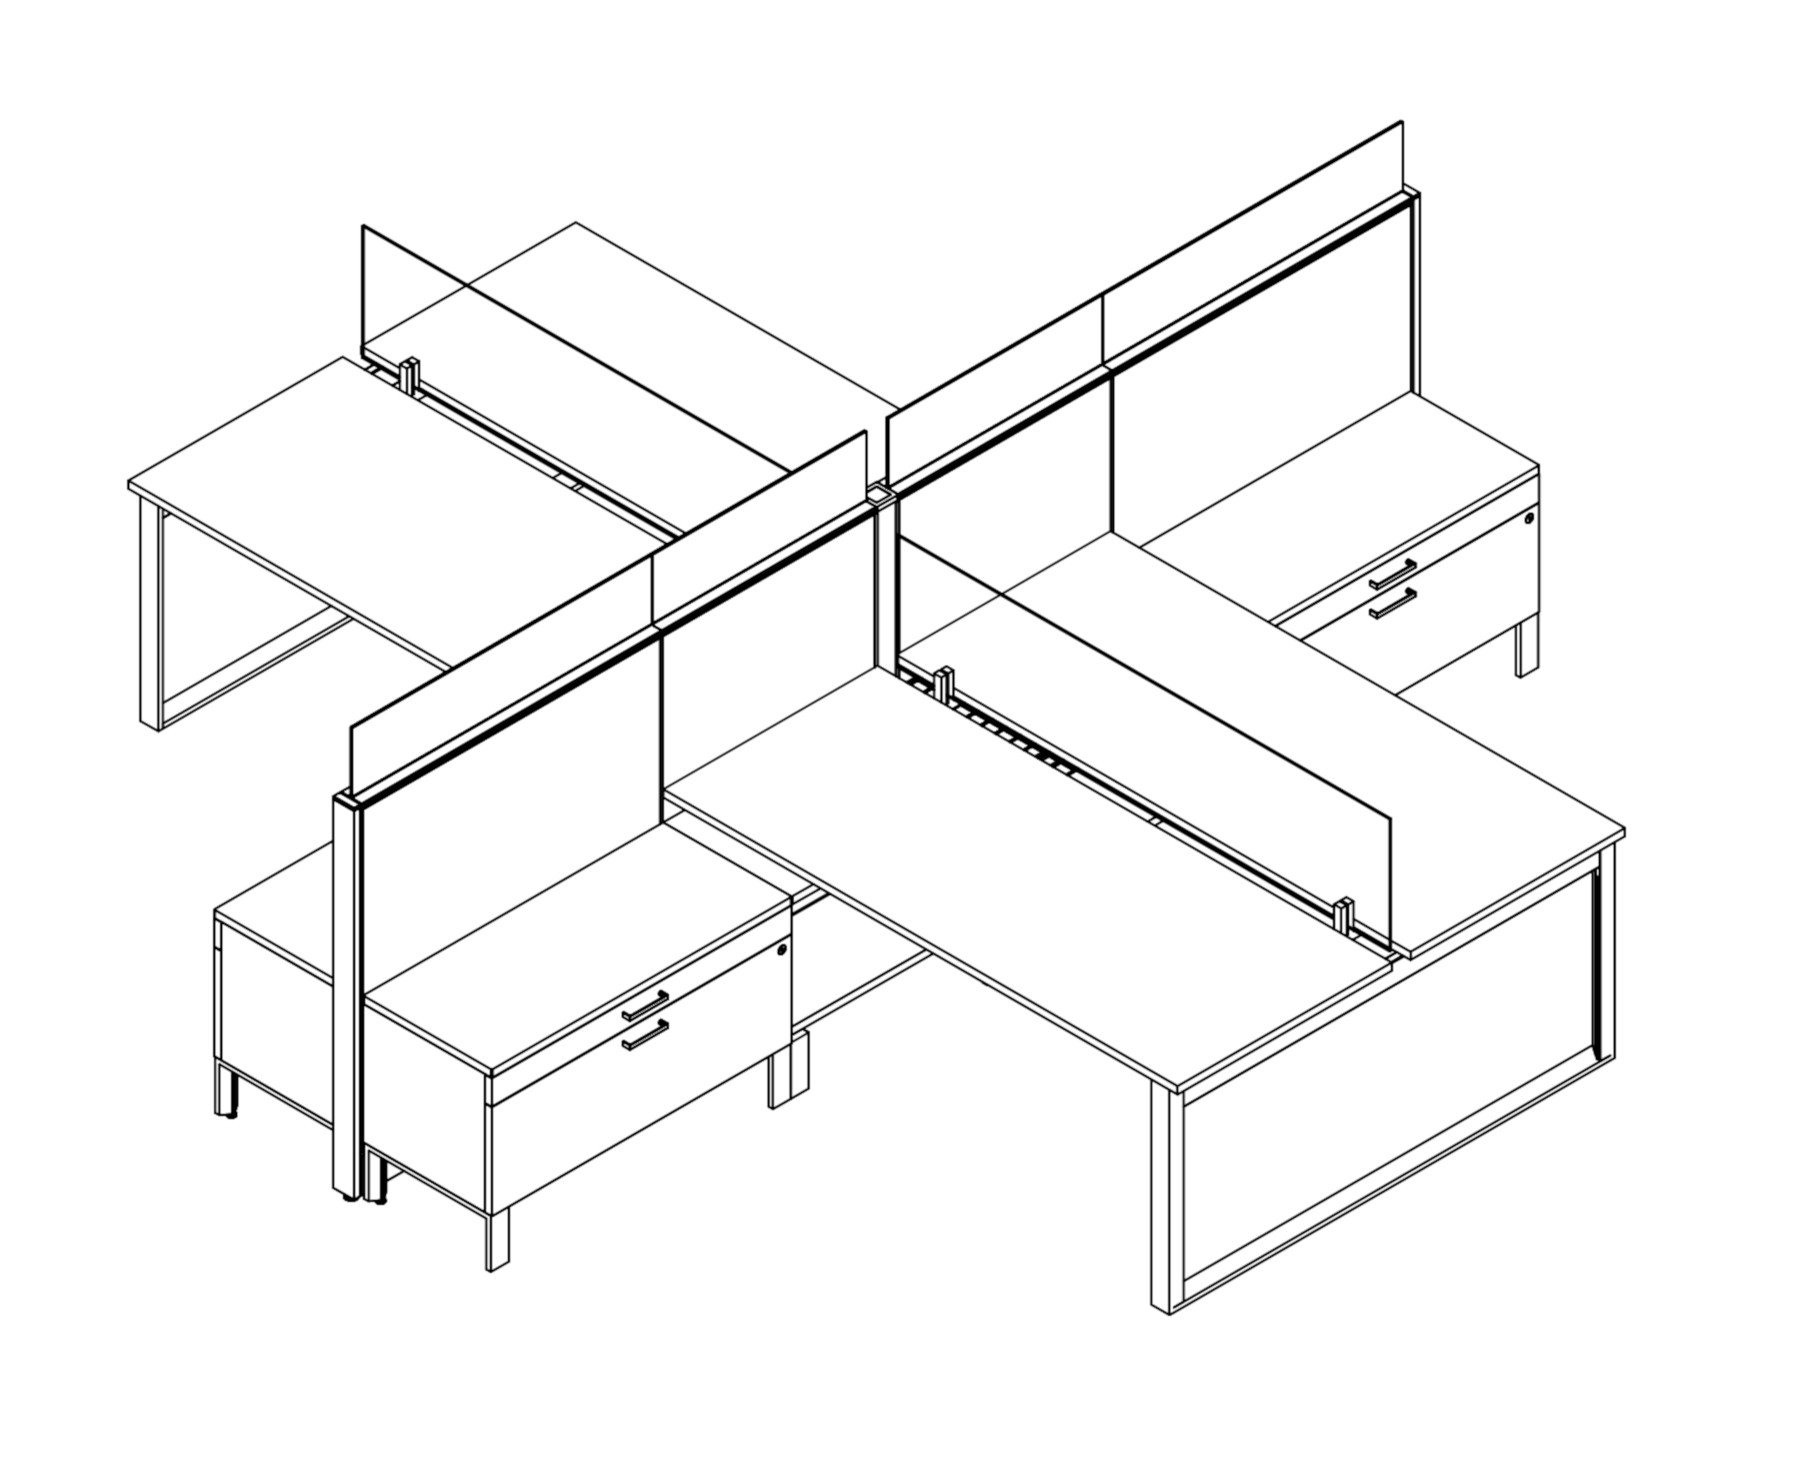 Technical drawing of Global's Evolve EV507 System, configured as a pair of facing cubicles (4-pack). A clear screen separates each facing station, and has a credenza on the neighboring sidewall.